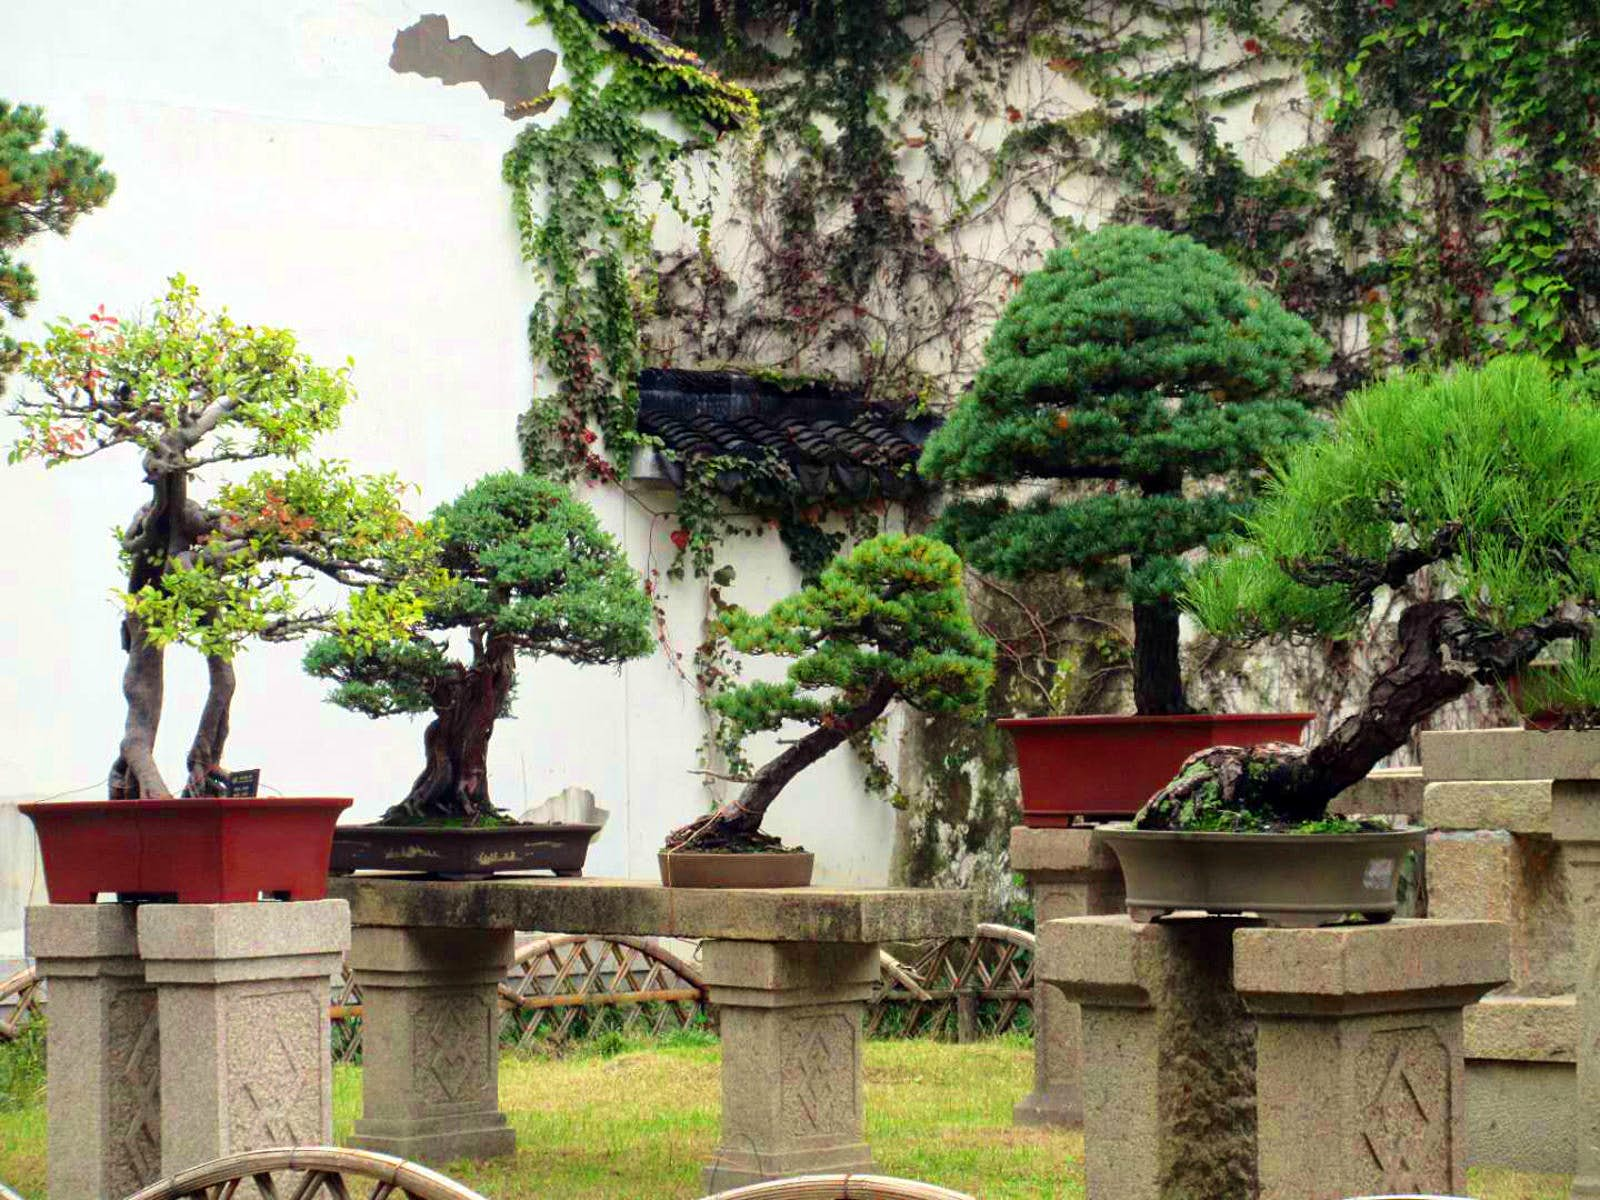 Four miniature evergreen trees on stone platforms in front of a white wall covered in vines. Suzhou's gardens are conceived as microcosms of the natural world, featuring miniature versions of things like trees © Tess Humphrys / Lonely Planet